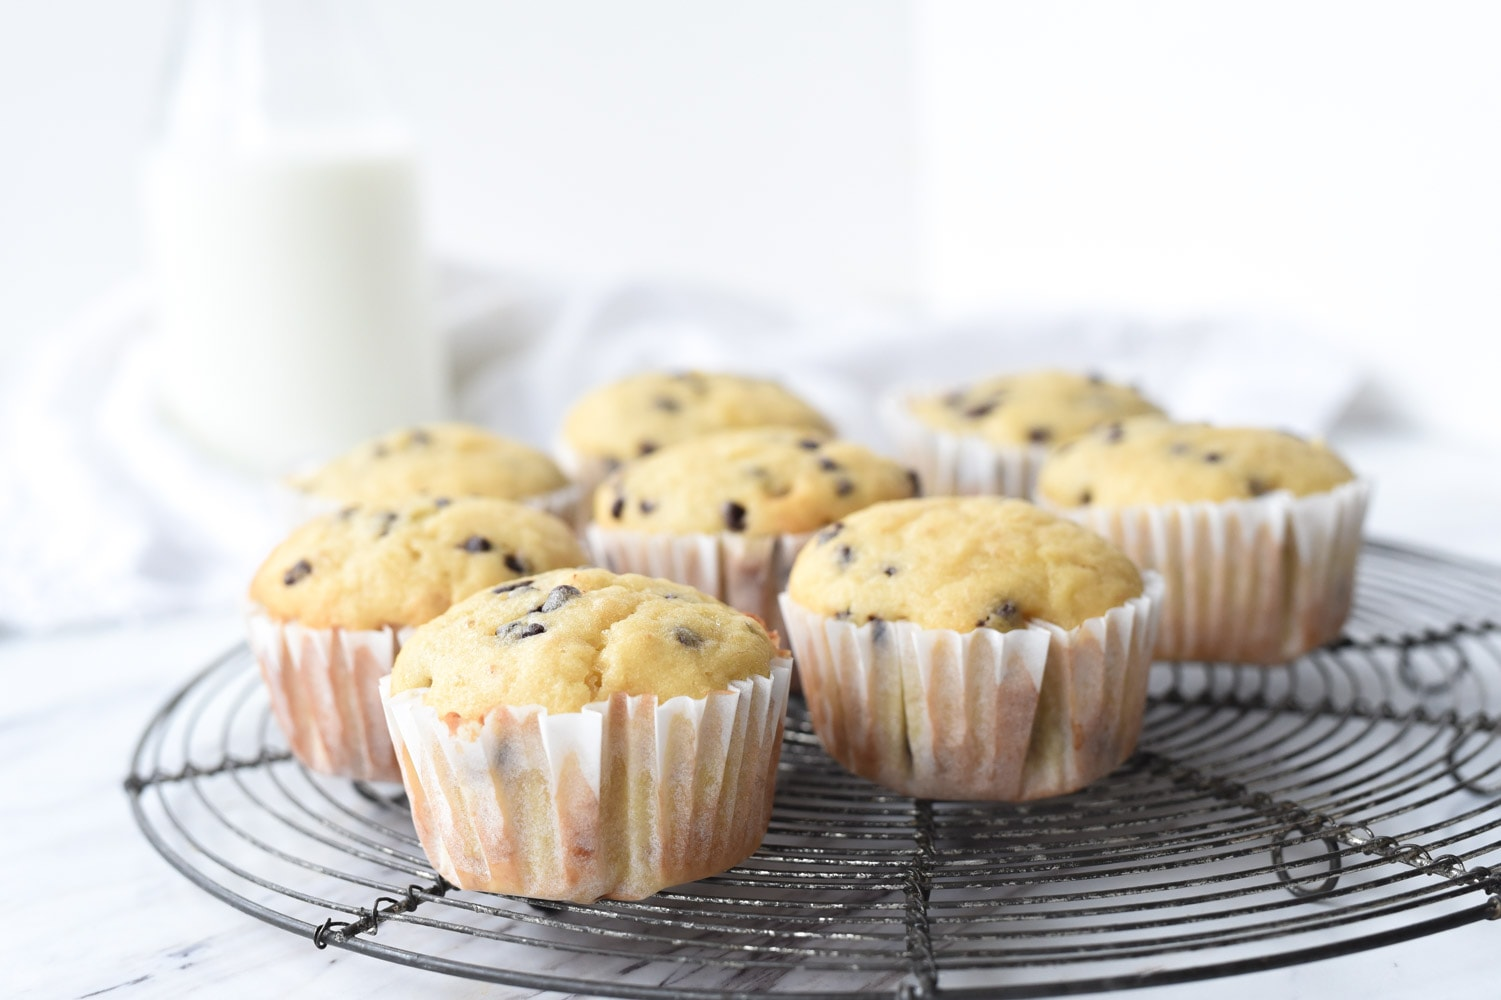 banana chocolate chip muffins on a cooling rack